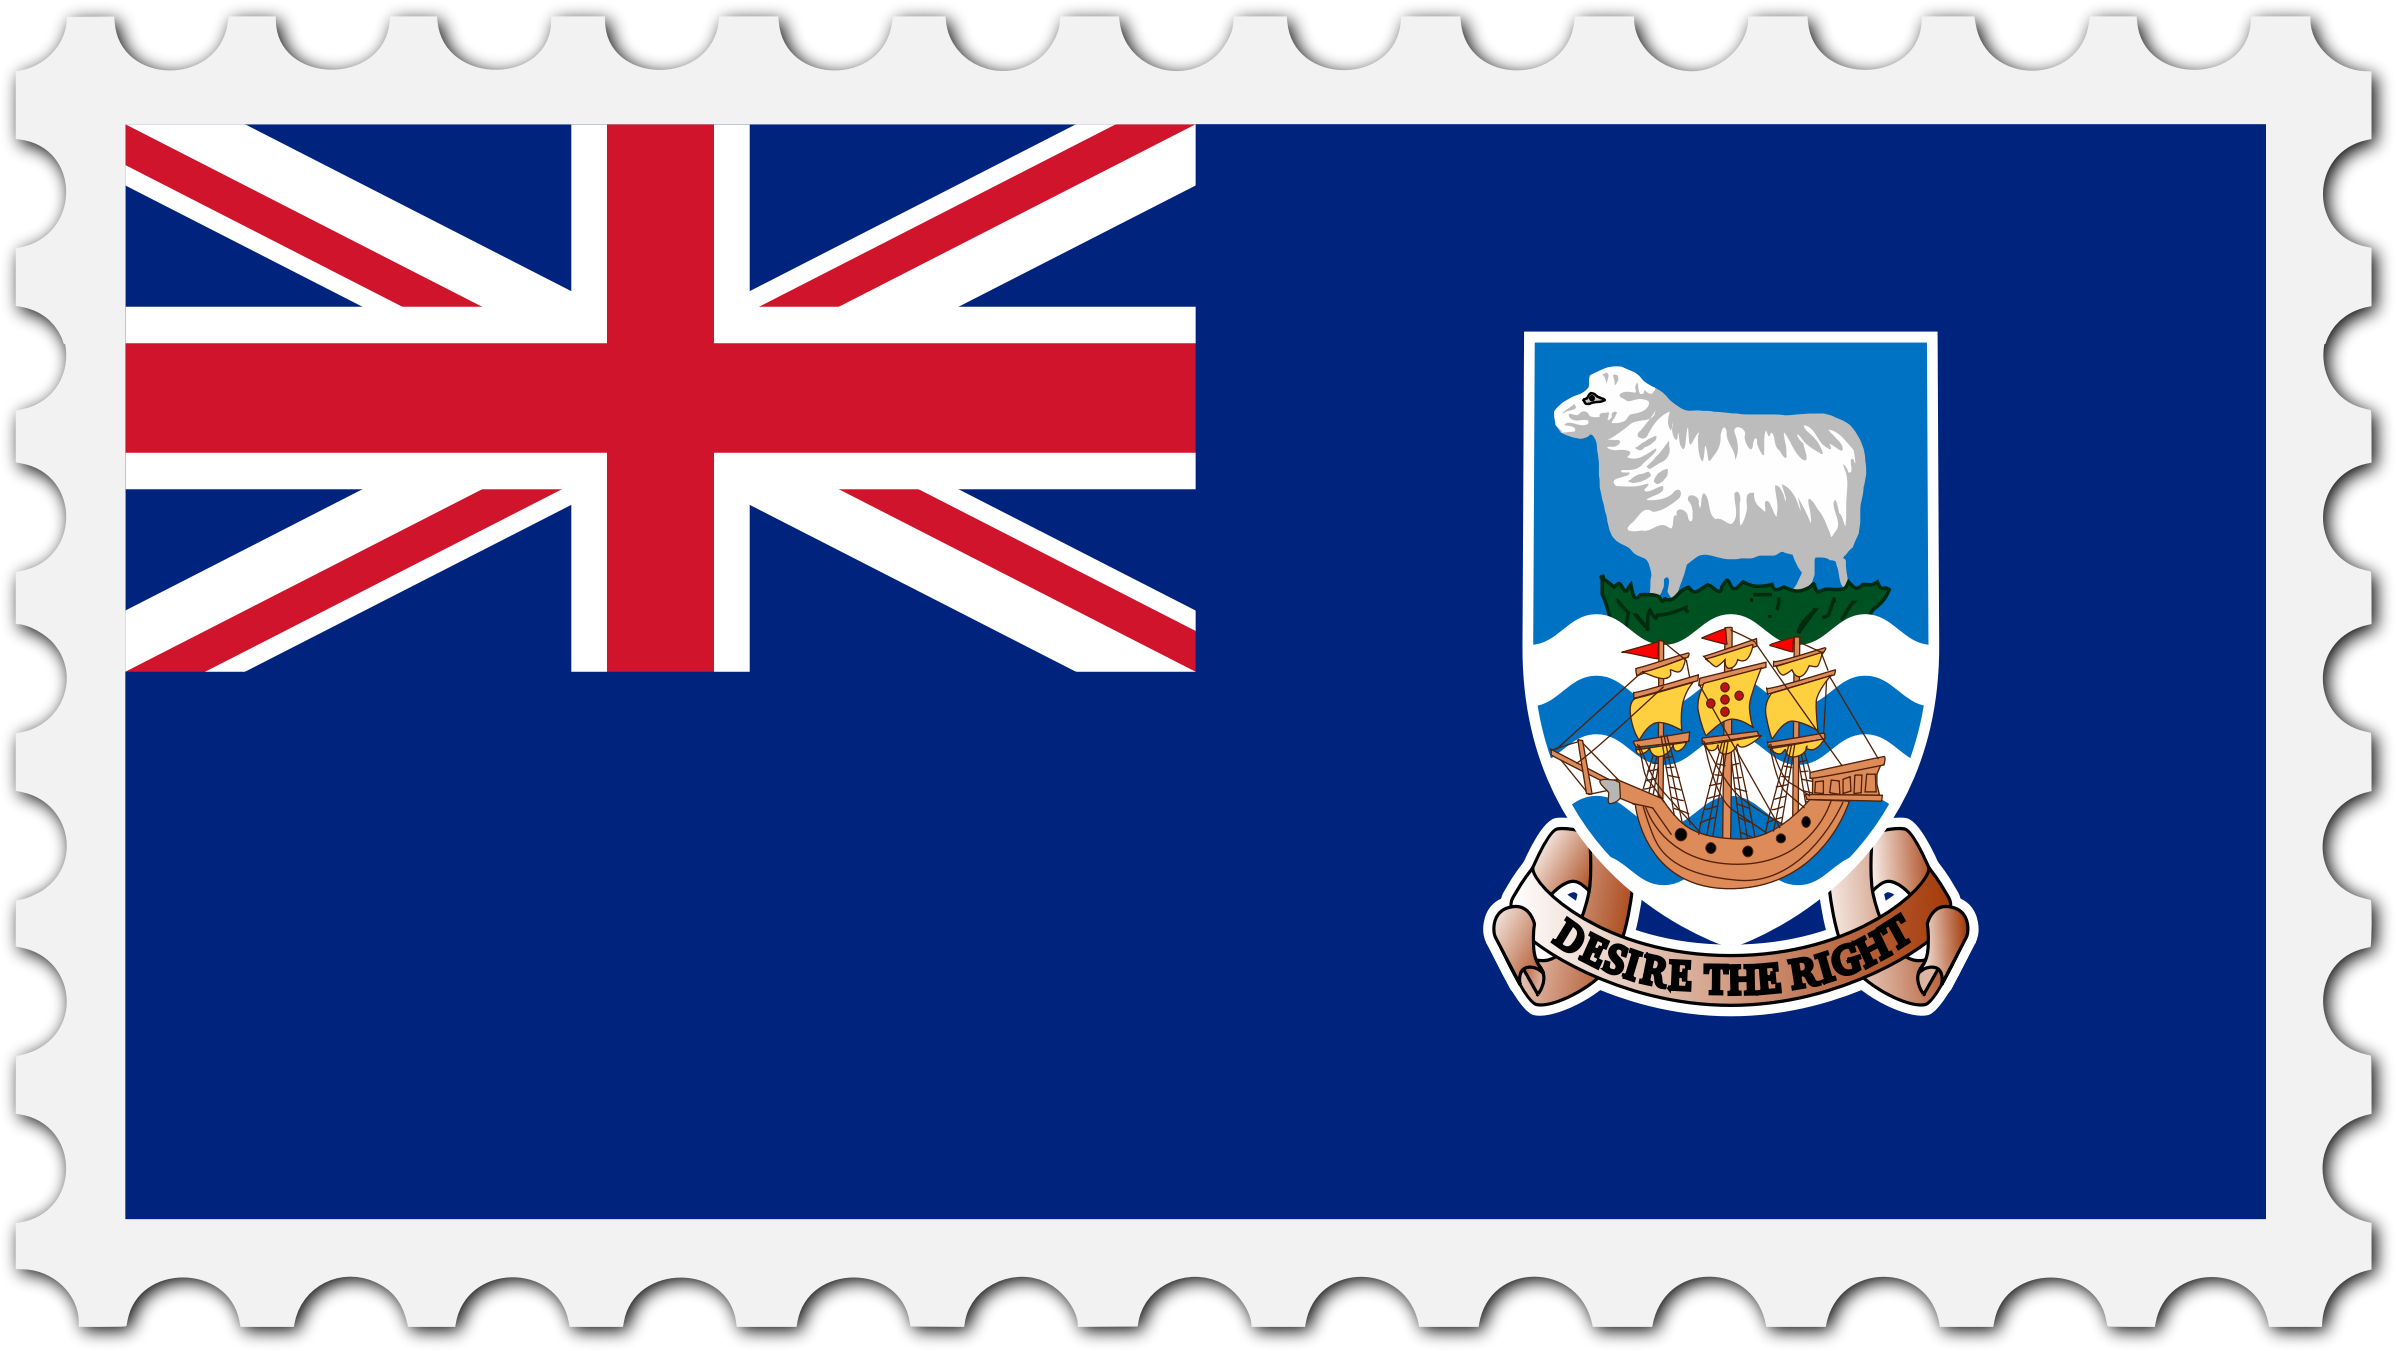 Falkland Islands flag stamp by Firkin